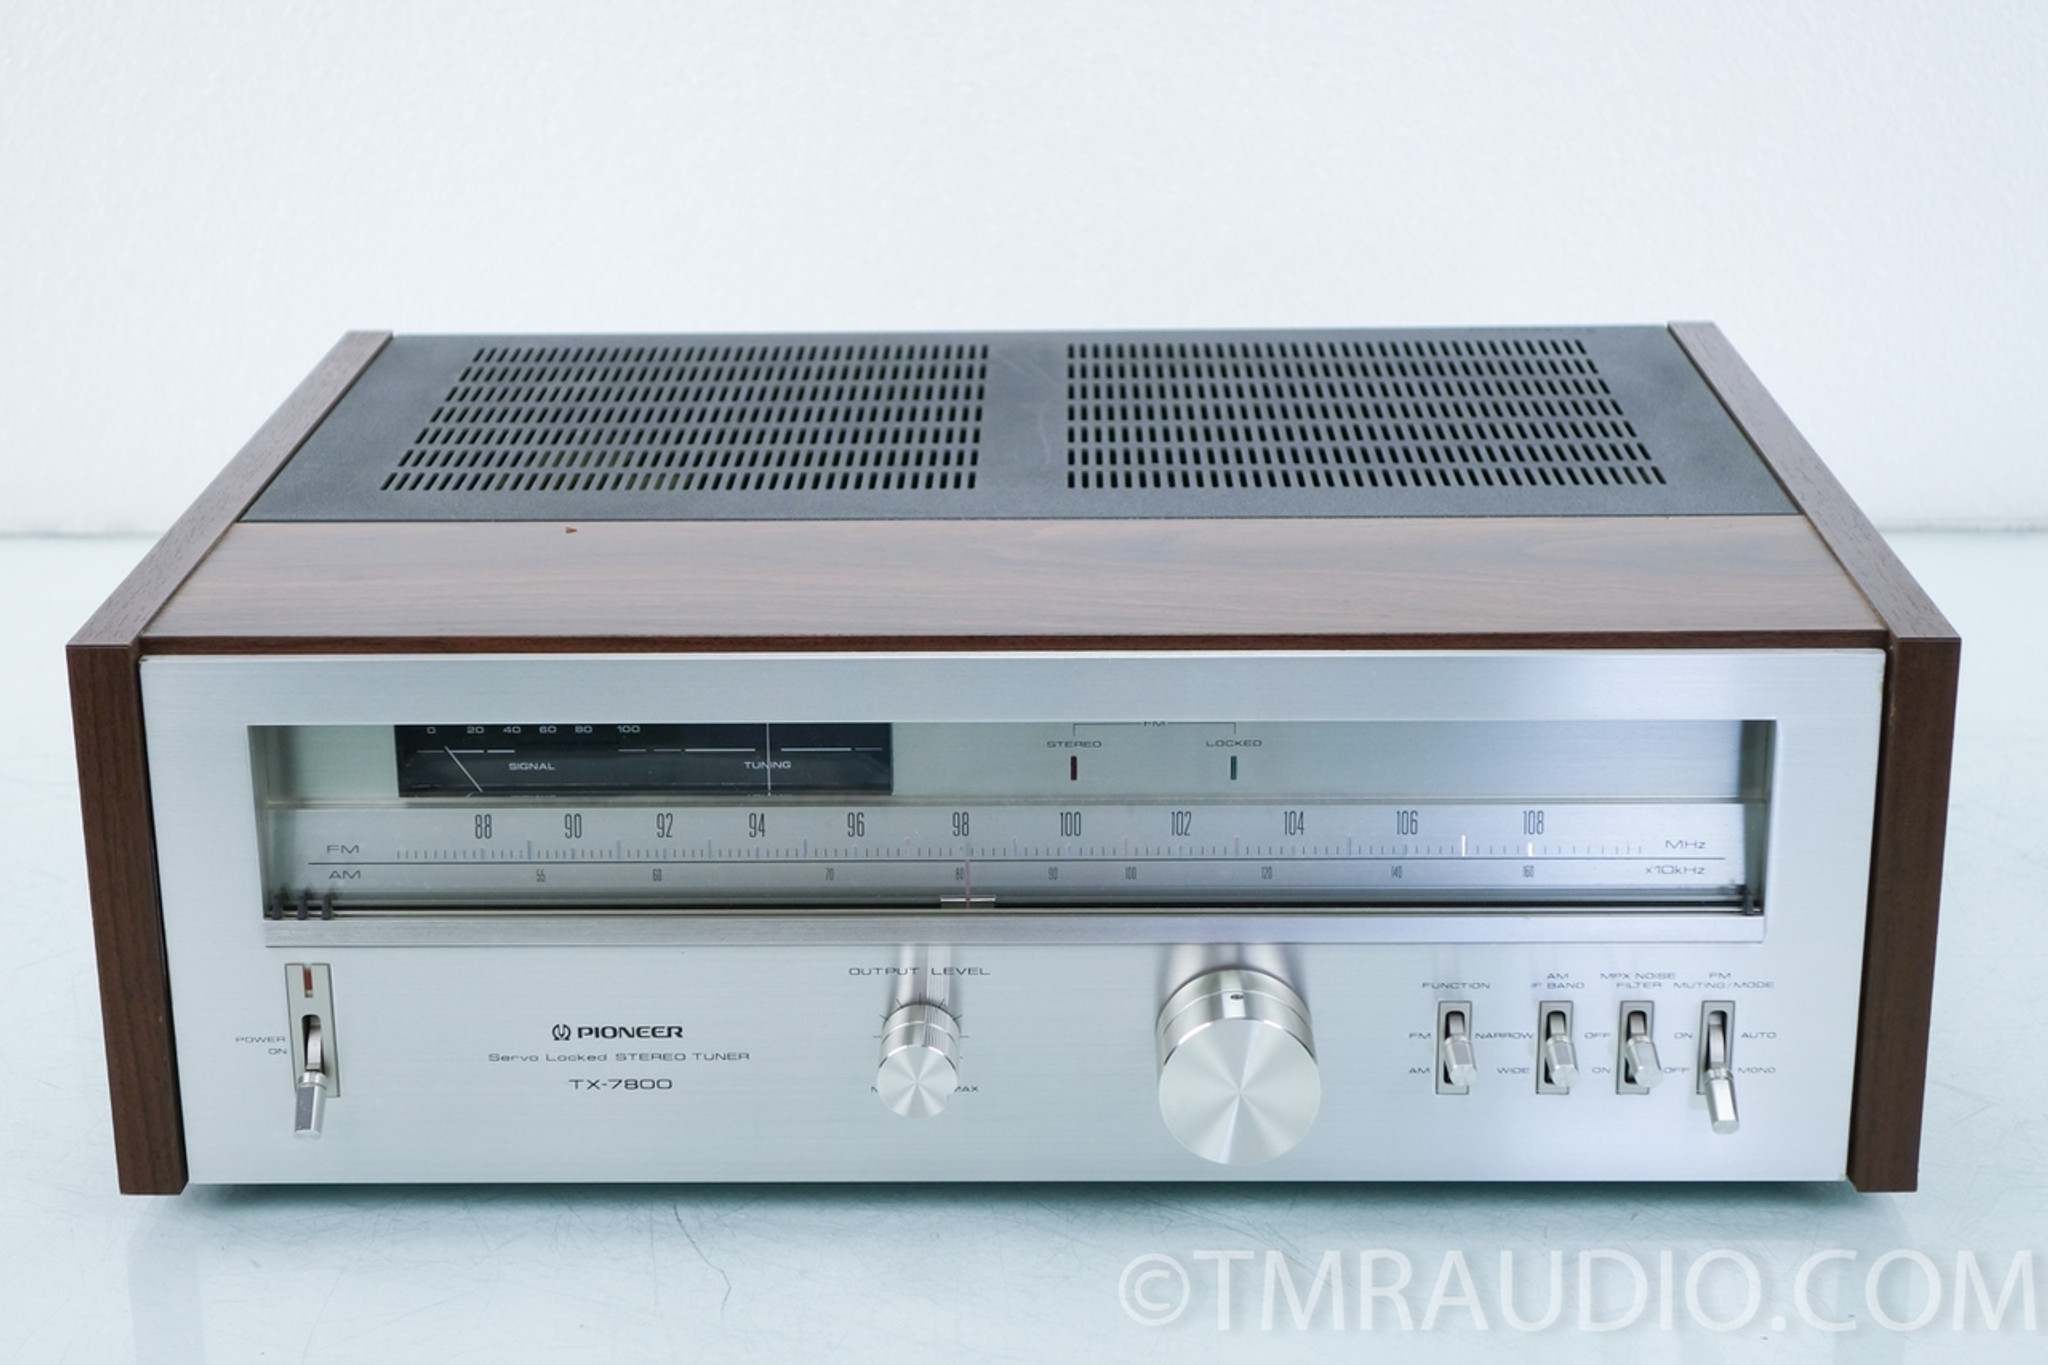 Pioneer Tx-7800 Vintage Am  Fm Tuner - The Music Room-2002